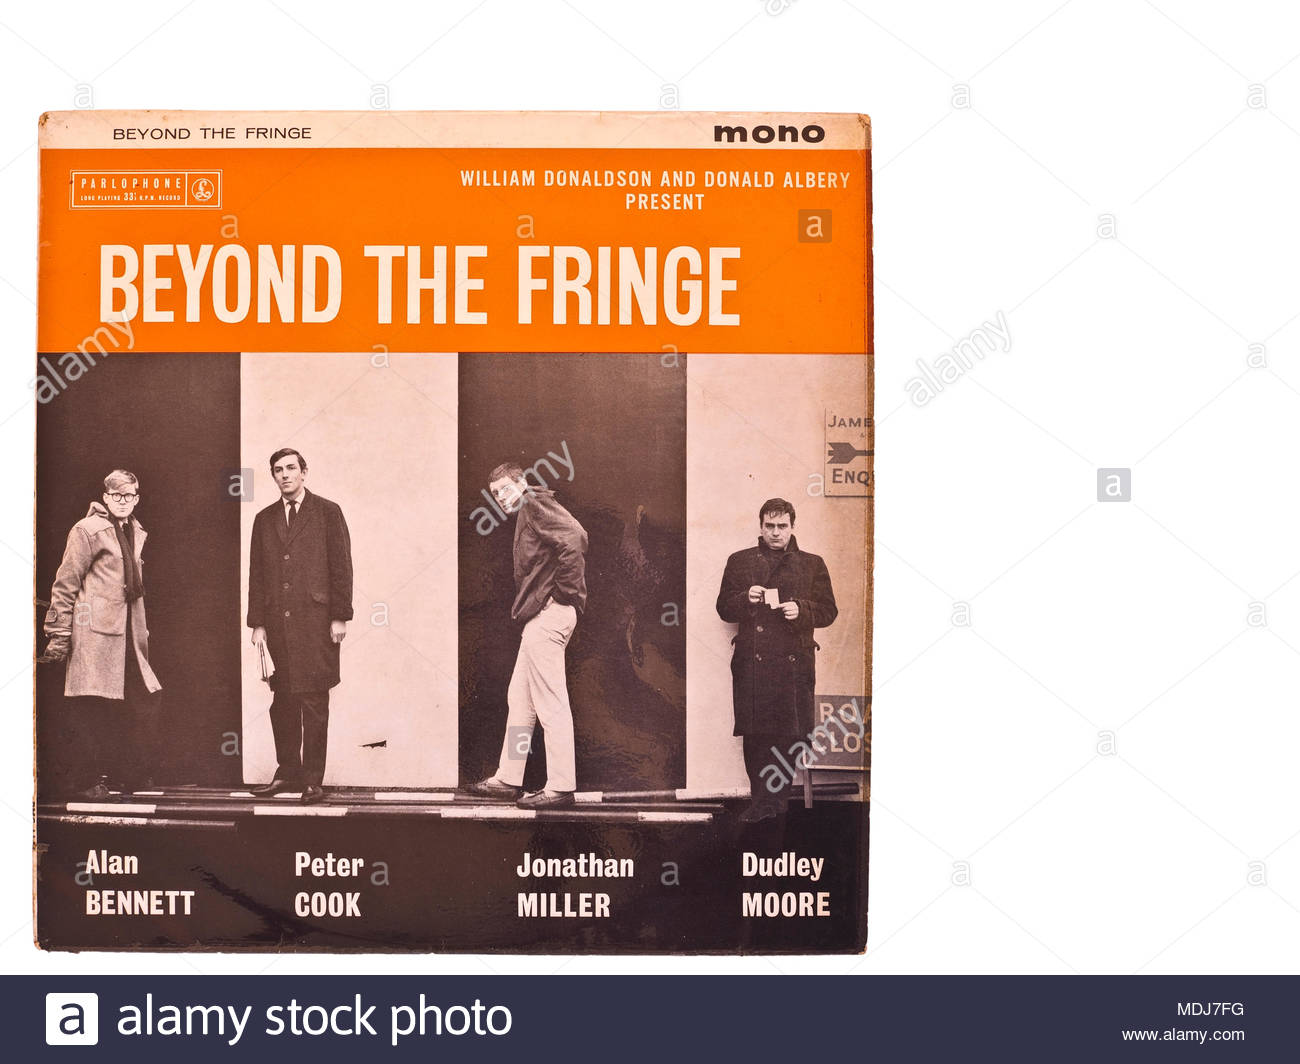 Beyond the Fringe humour, LP with copy space - Stock Image